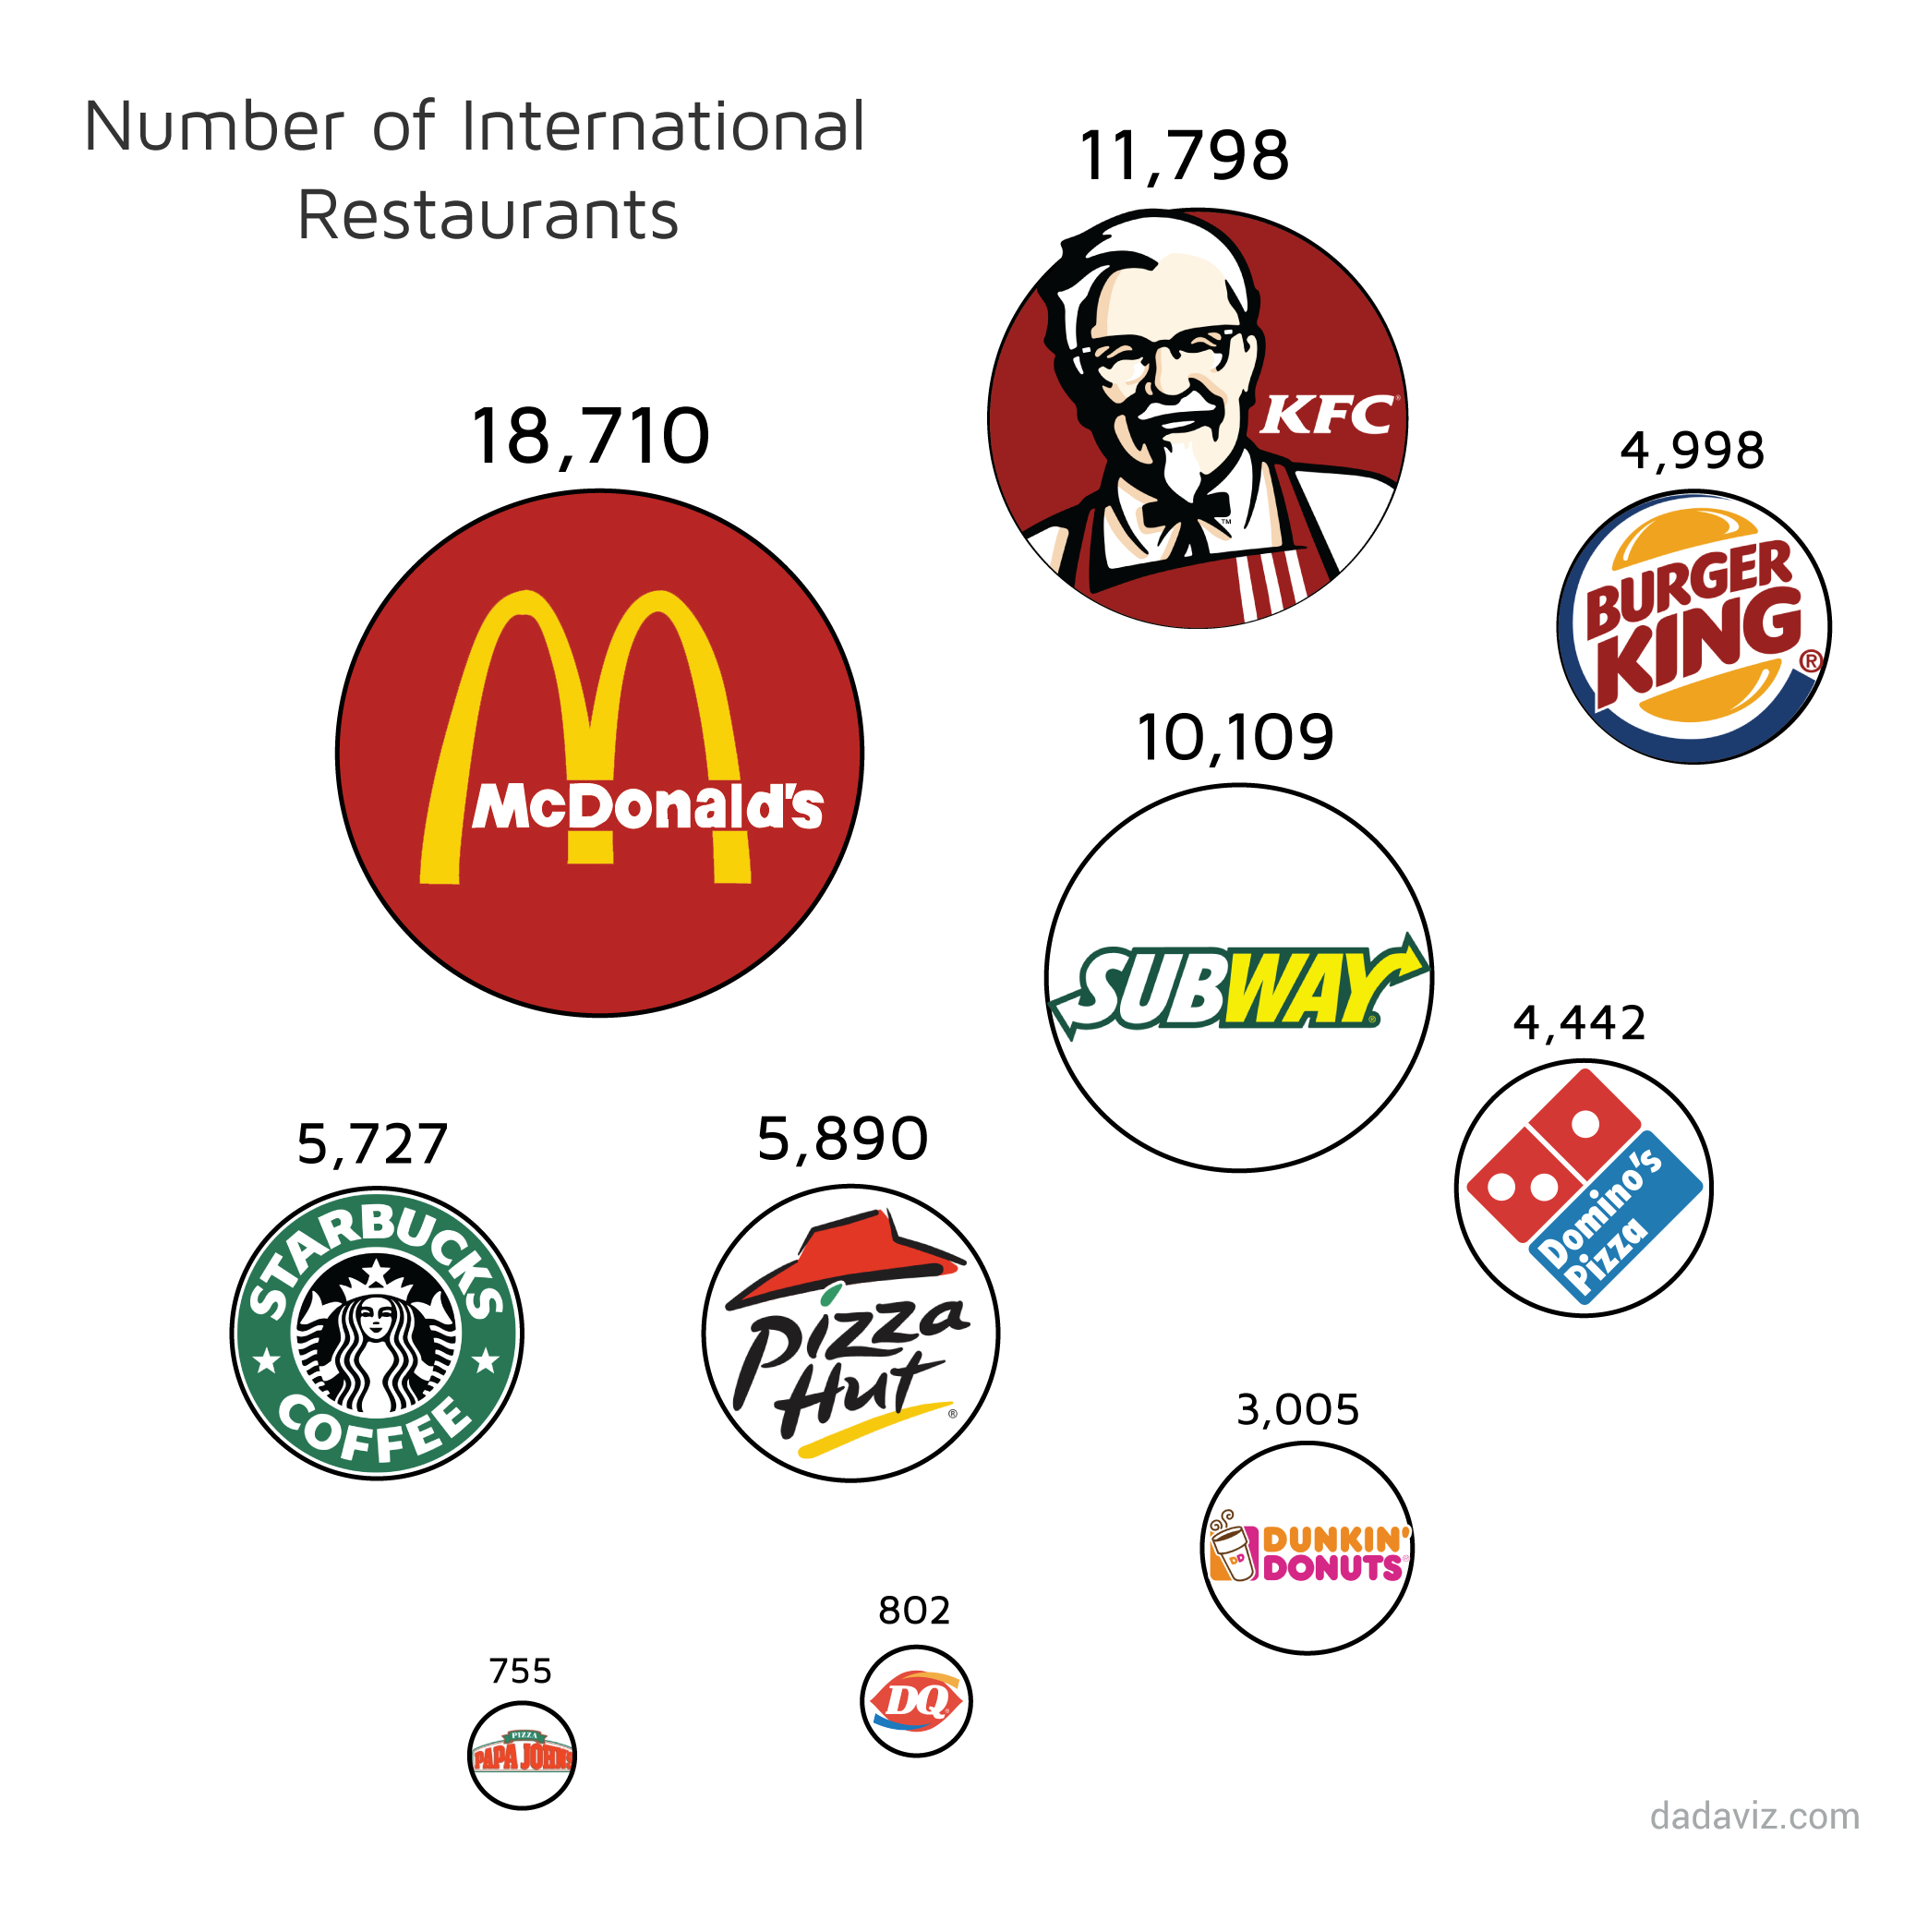 mcdonalds global expansion There is no doubt that mcdonald's has been successful in developing and maintaining a recognizable global brand this case study examines the mcdonald's glob.